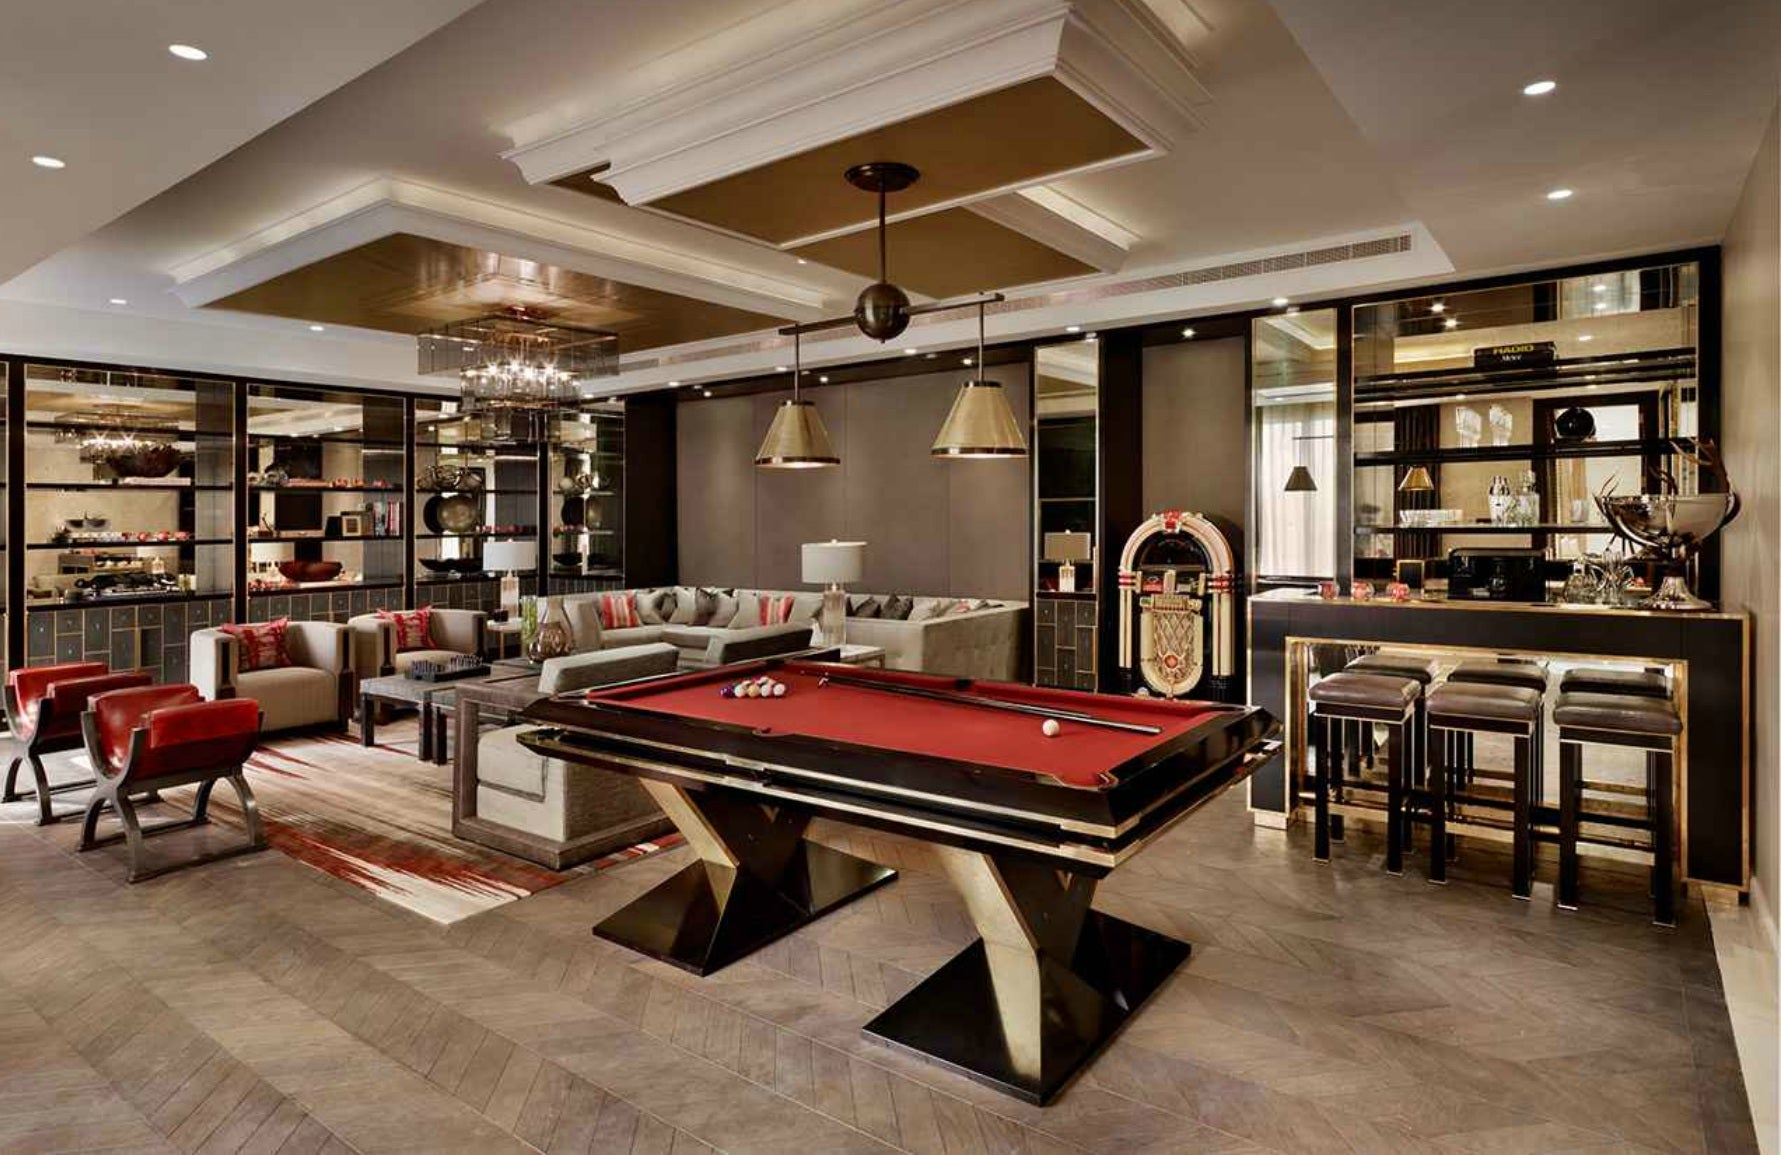 Man Cave Interiors | Katharine Pooley Games Room | The Luxurist | LuxDeco.com